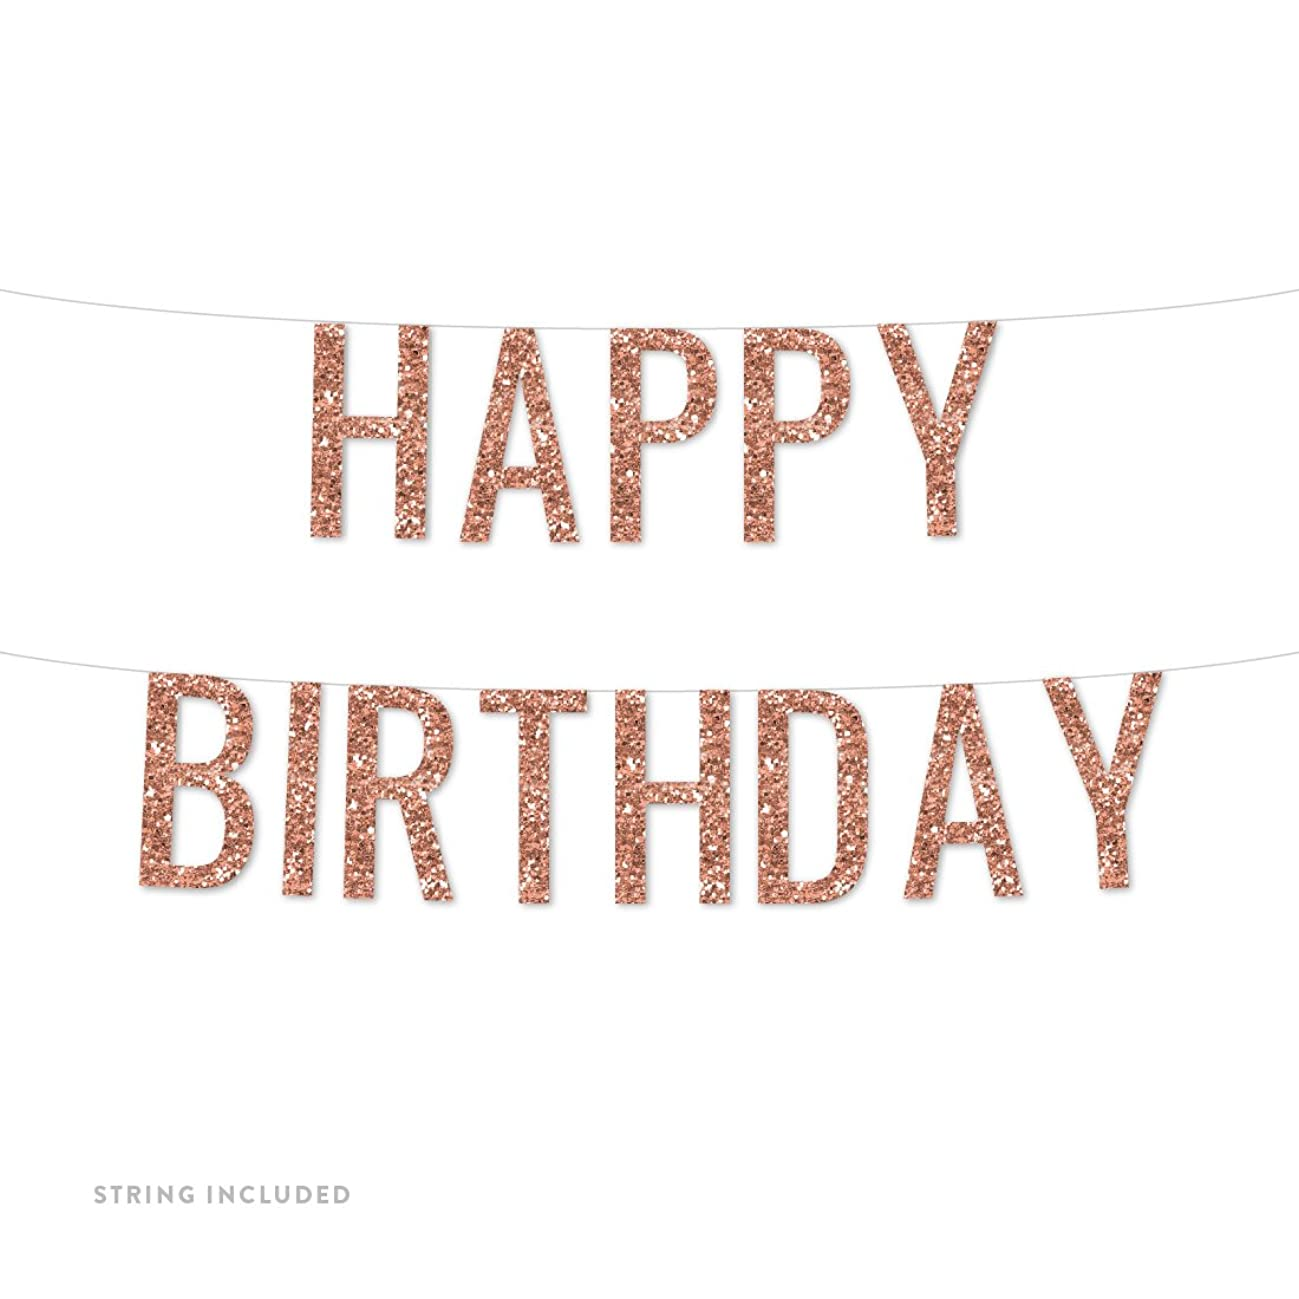 Andaz Press Real Glitter Paper Pennant Hanging Banner, Happy Birthday, Rose Gold Glitter, Includes String, Pre-Strung, No Assembly Required, 1-Set